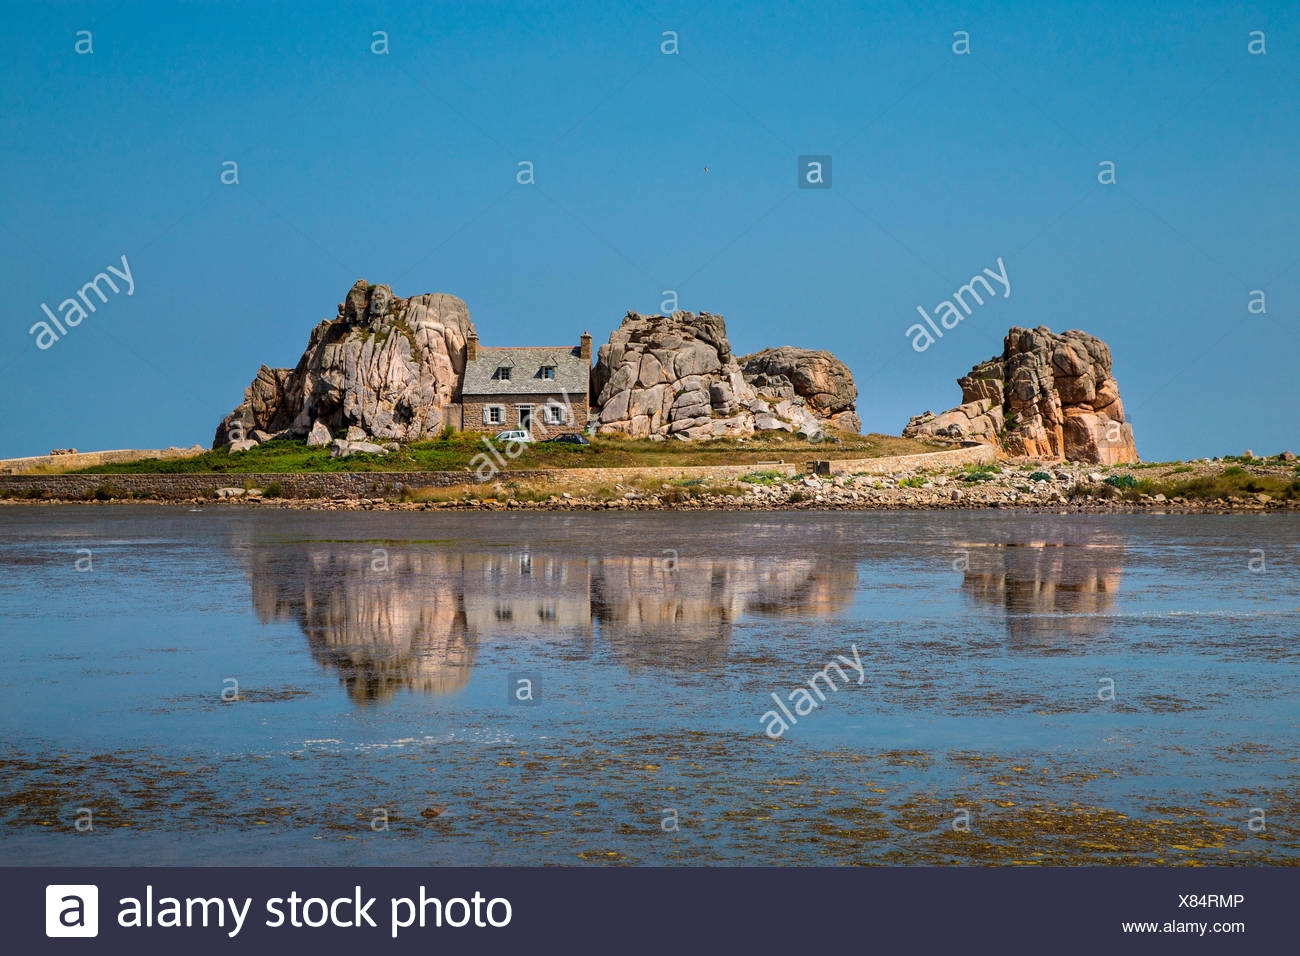 Bretagne, France. The famous house surrounded by rocks, reflecting itself in the sea. - Stock Image